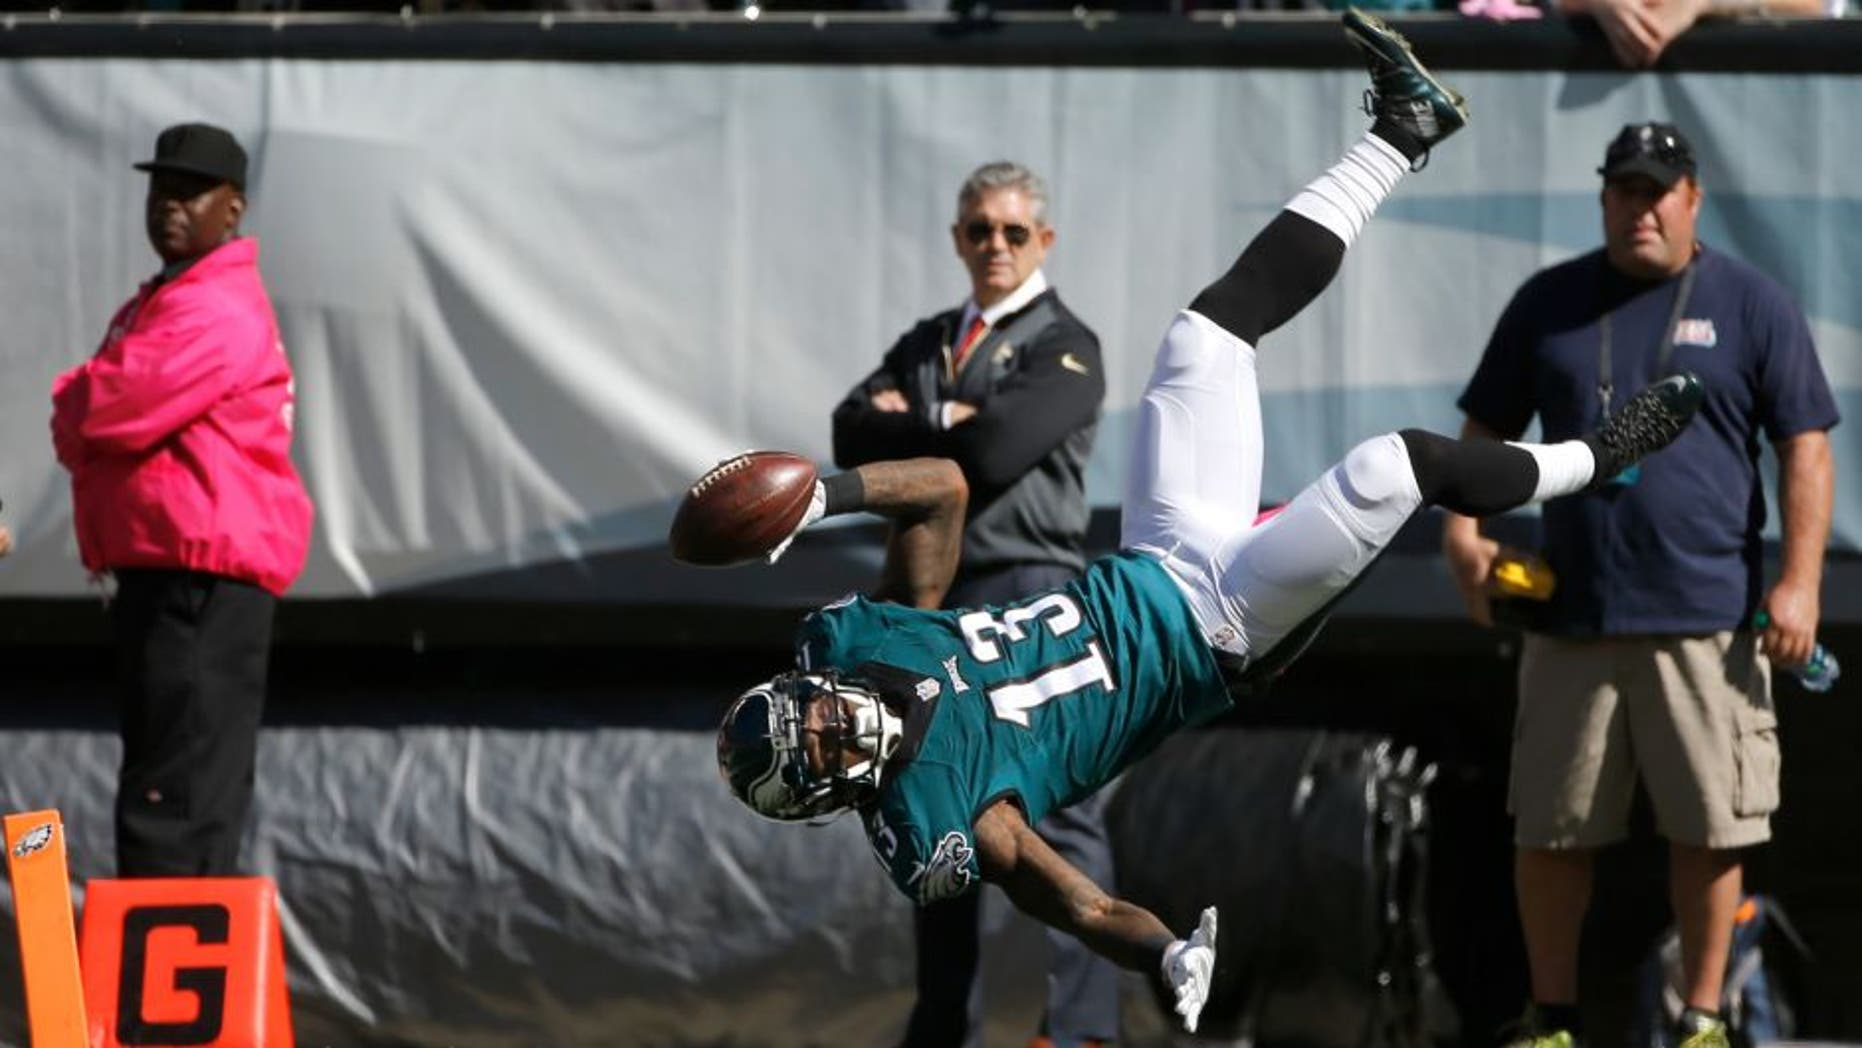 Philadelphia Eagles' Josh Huff flips into the end zone for a touchdown during the first half of an NFL football game against the New Orleans Saints, Sunday, Oct. 11, 2015, in Philadelphia. (AP Photo/Michael Perez)